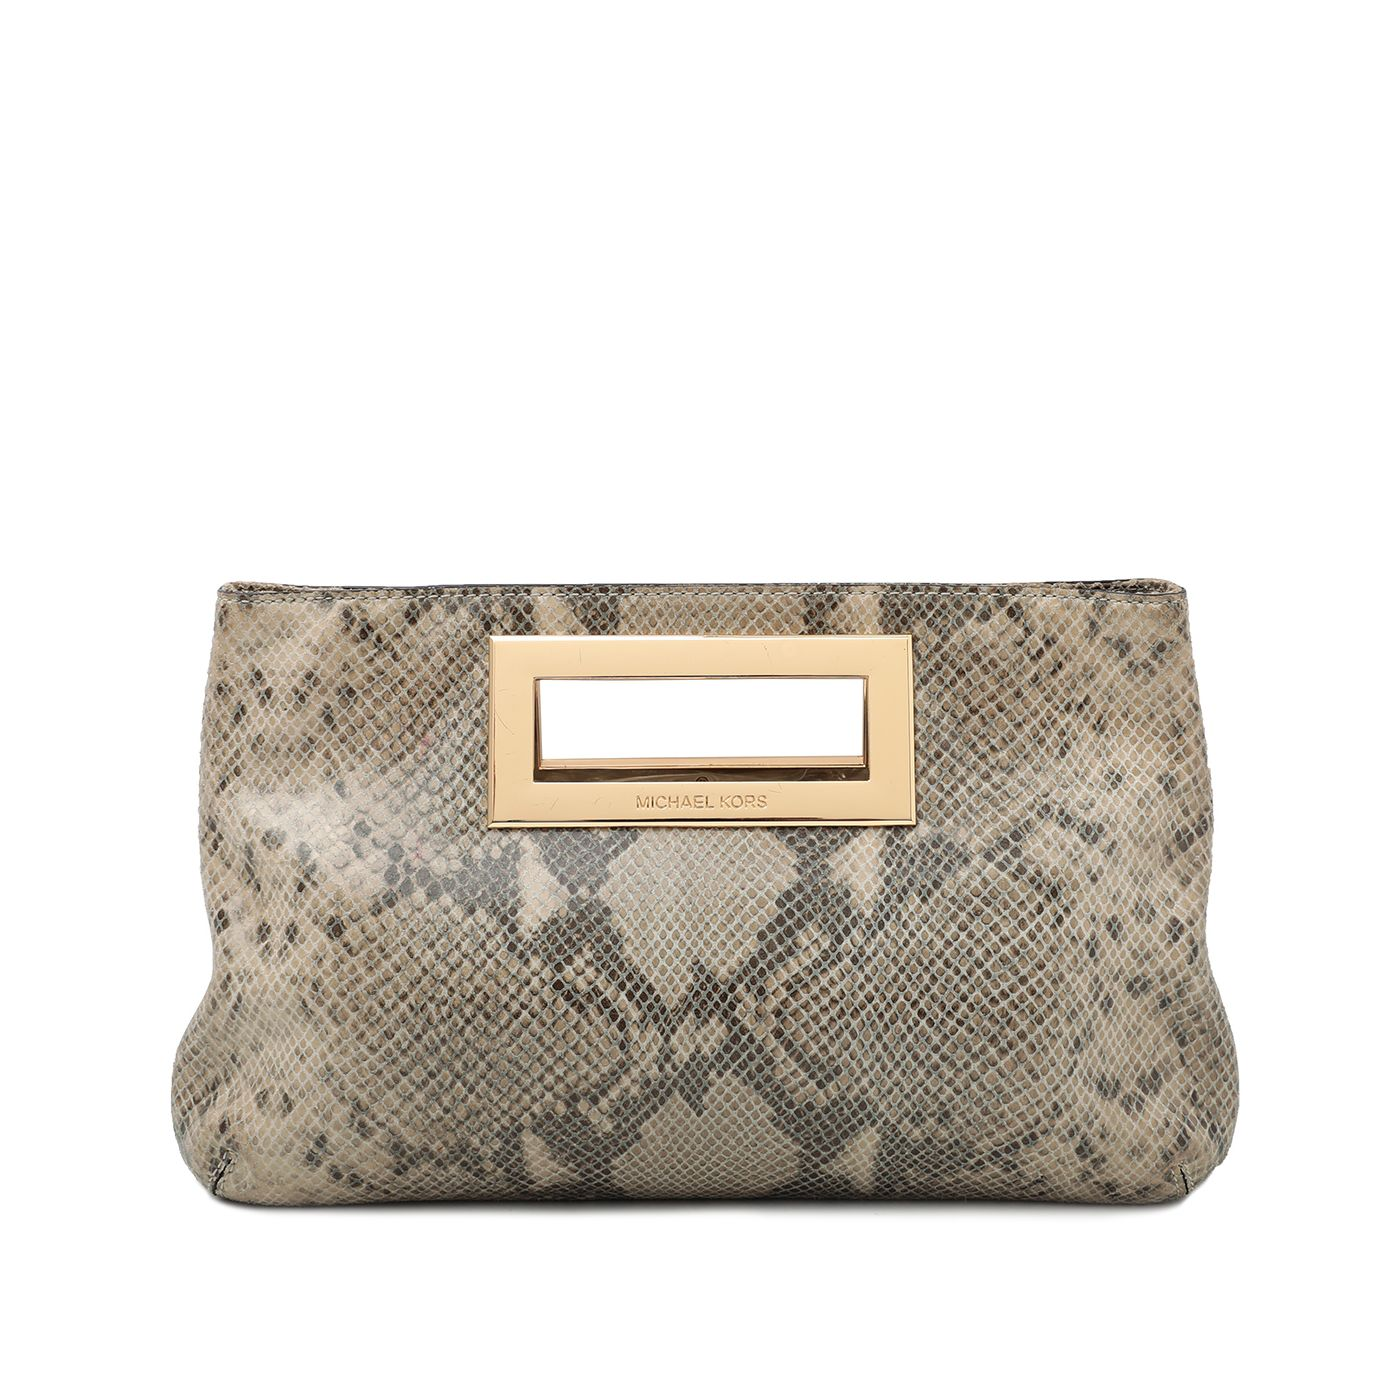 Michael Kors Gray Python Berkley Clutch